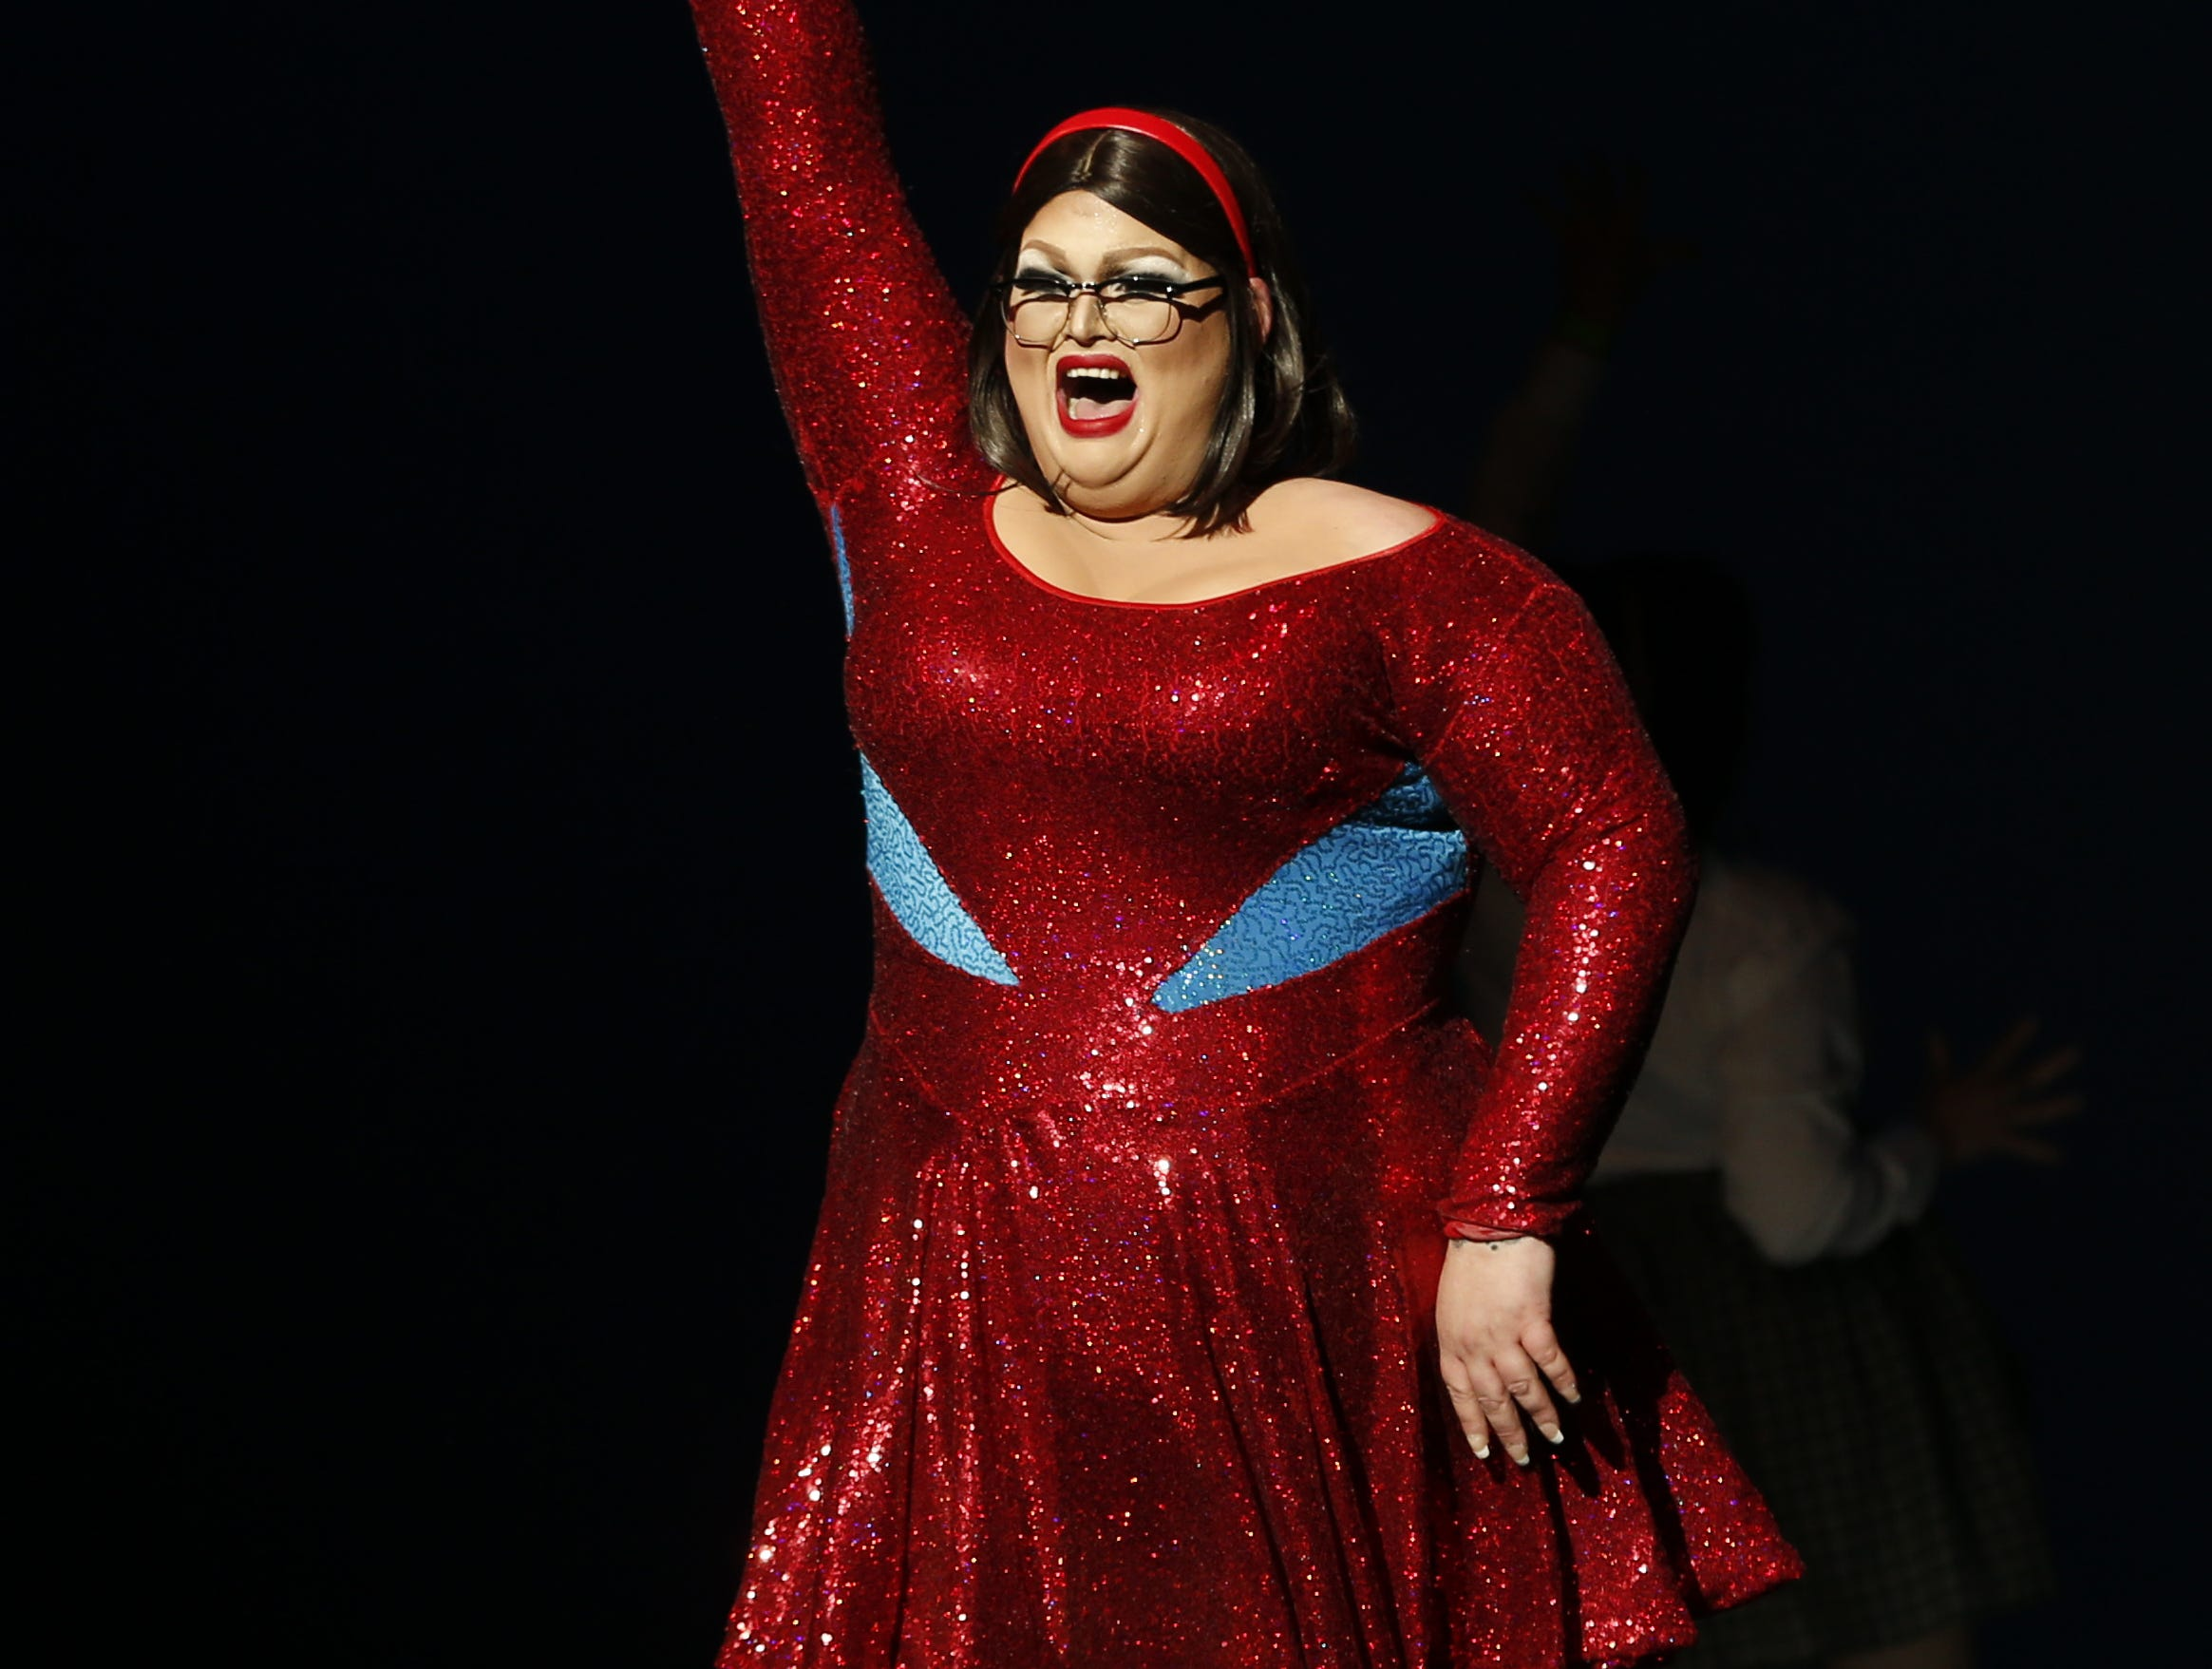 Miss Gay Phoenix America Franzia McKenzie performs during the Miss Gay Arizona America pageant 2019 at Tempe Center for the Arts on May 11, 2019.